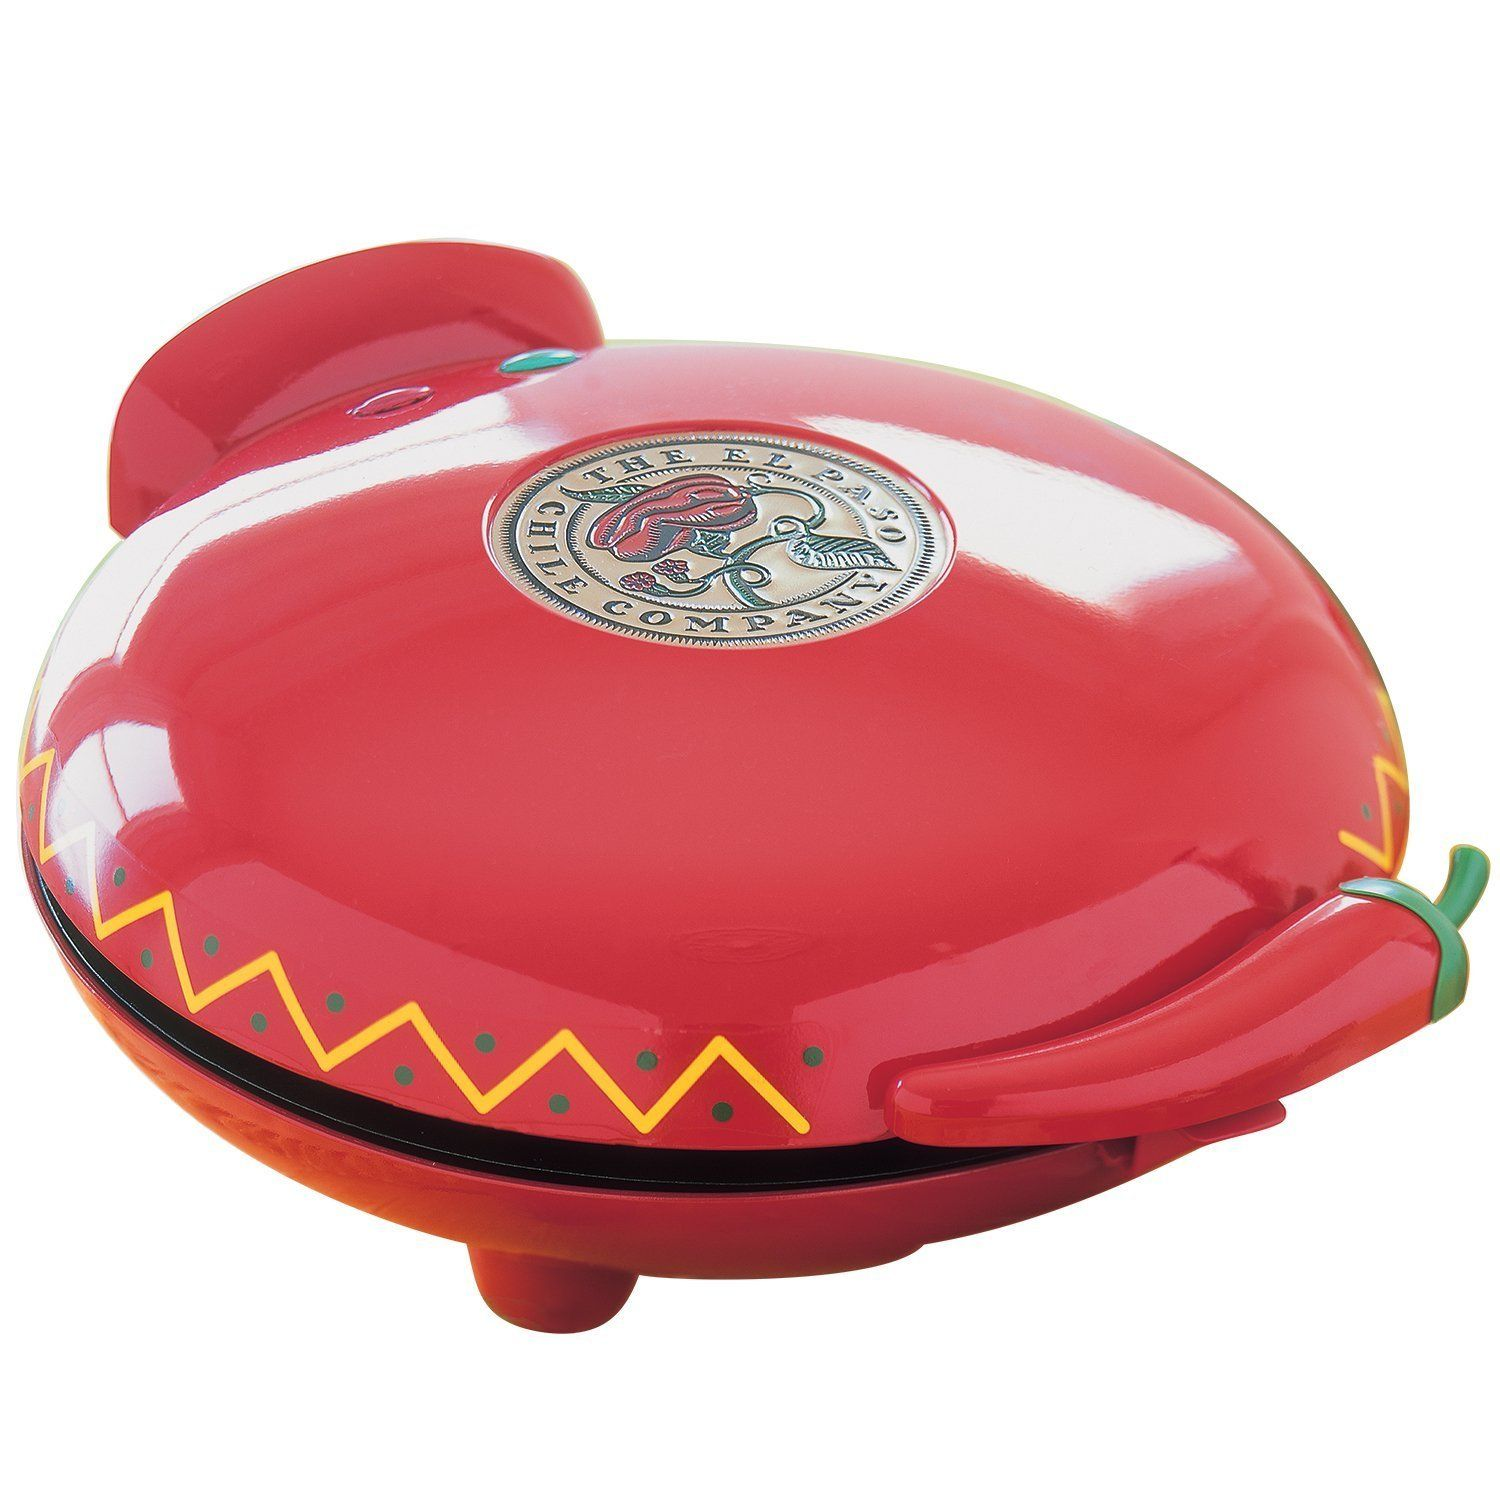 El Paso 10023 Quesadilla Maker This Is An Amazon Affiliate Link You Can Find Out More Details At The Quesadilla Maker Quesadilla Maker Recipes Quesadilla